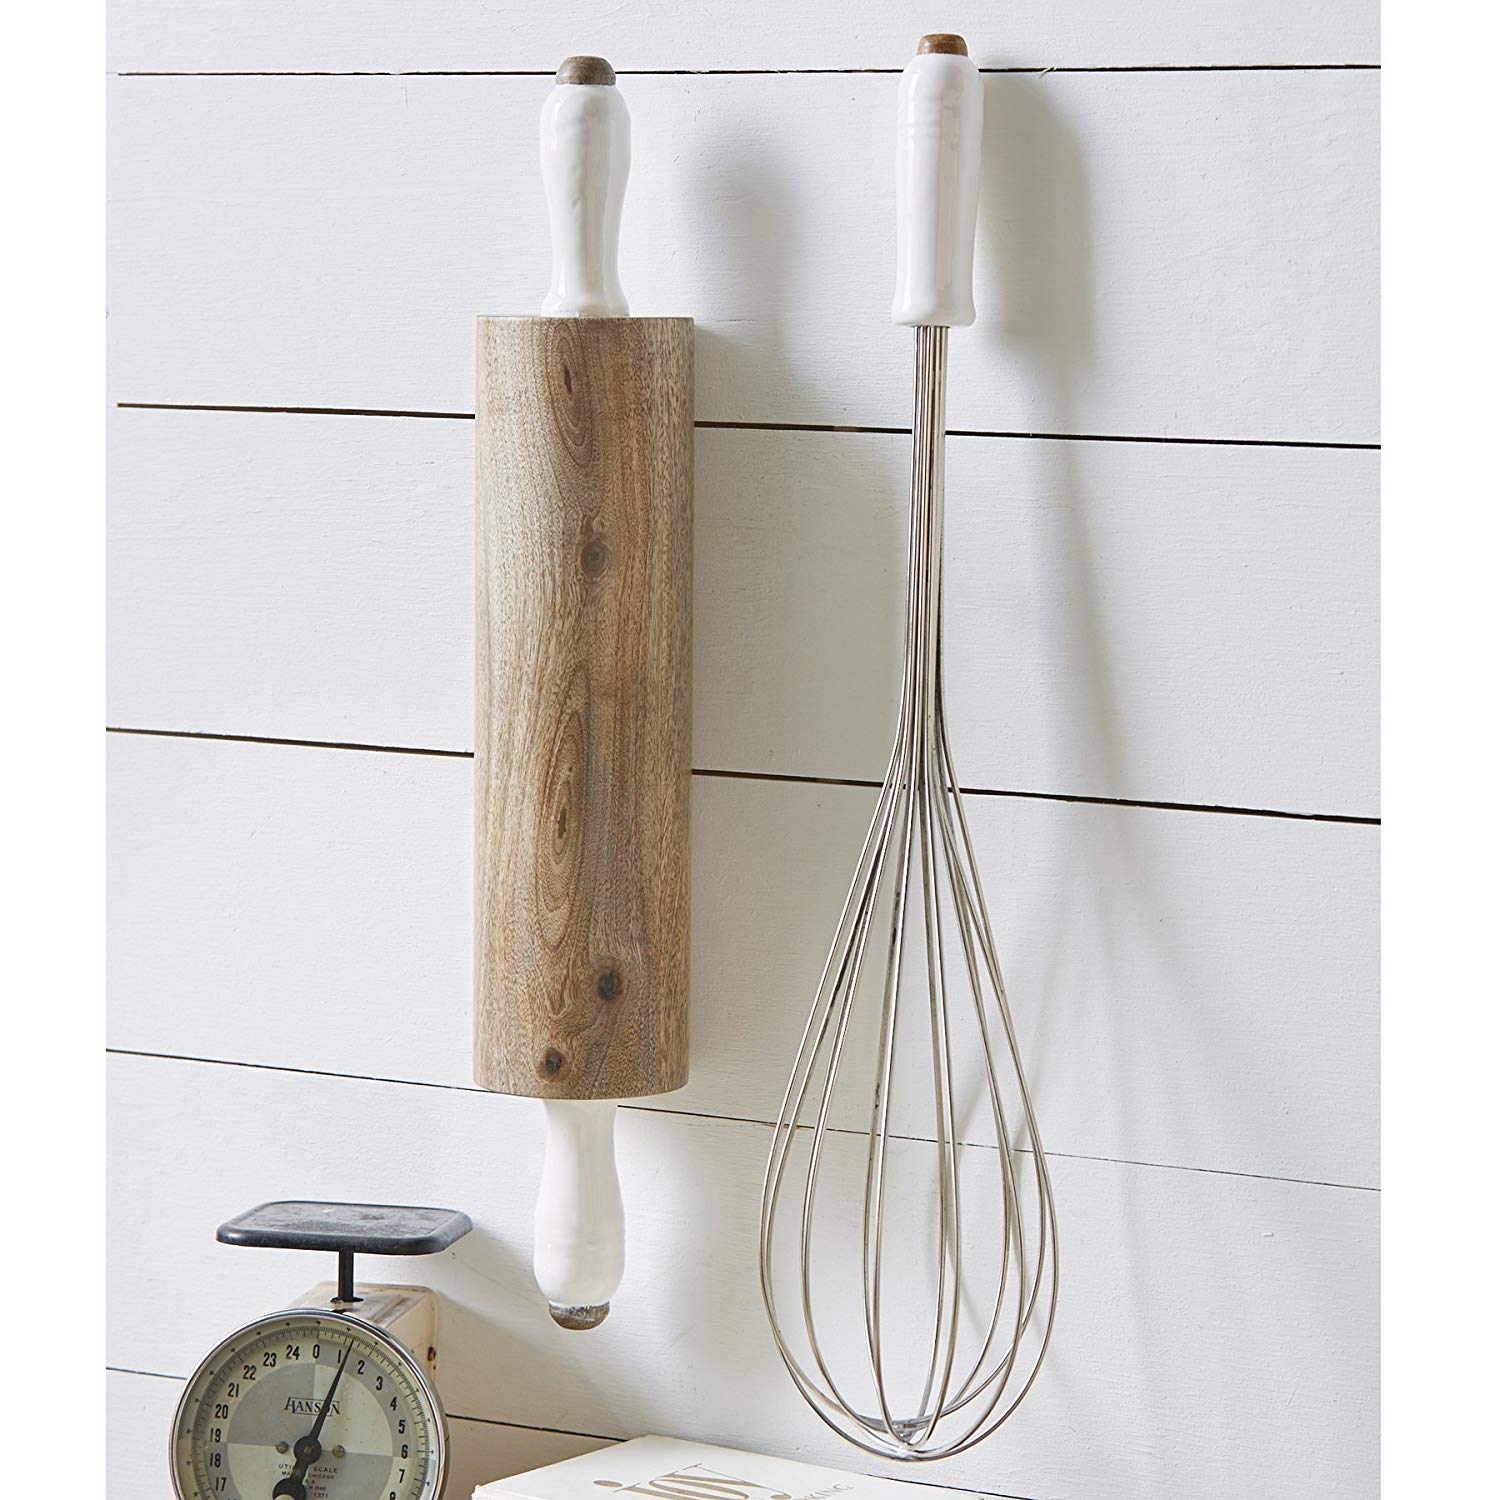 Garden party essentials rolling pin and whisk decorations